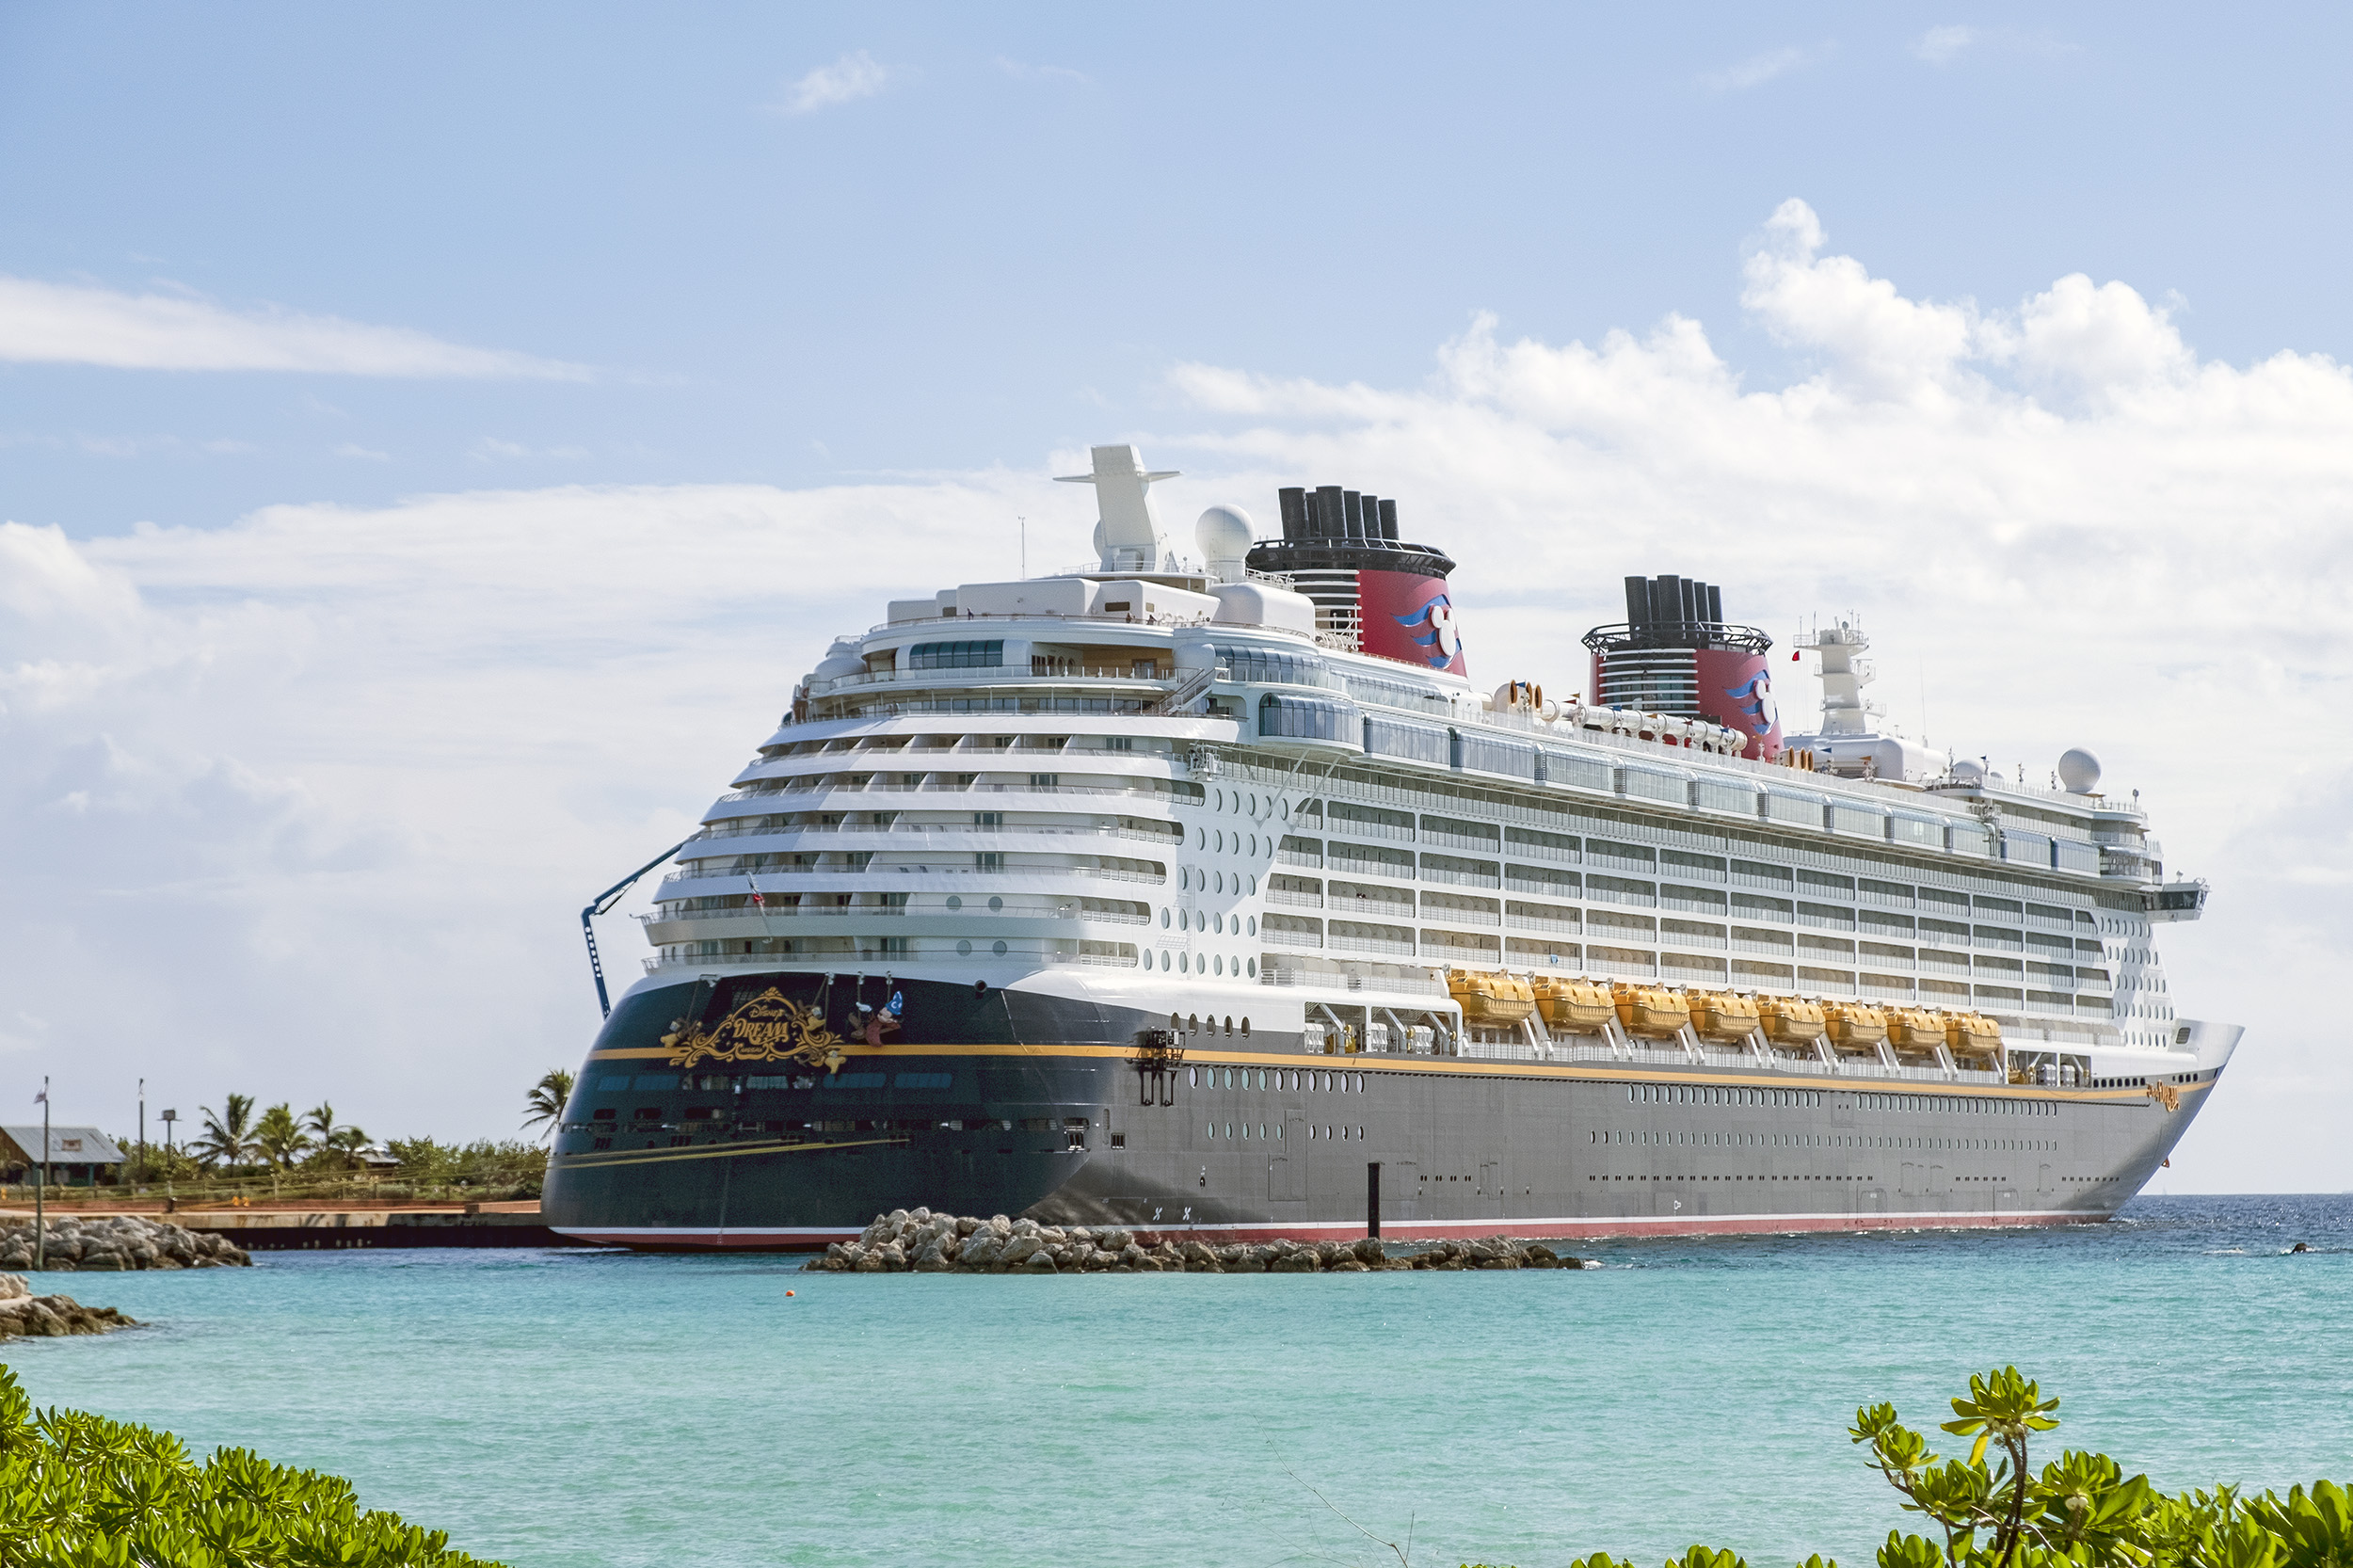 Disney Dream Castaway Cay Reselista 2019